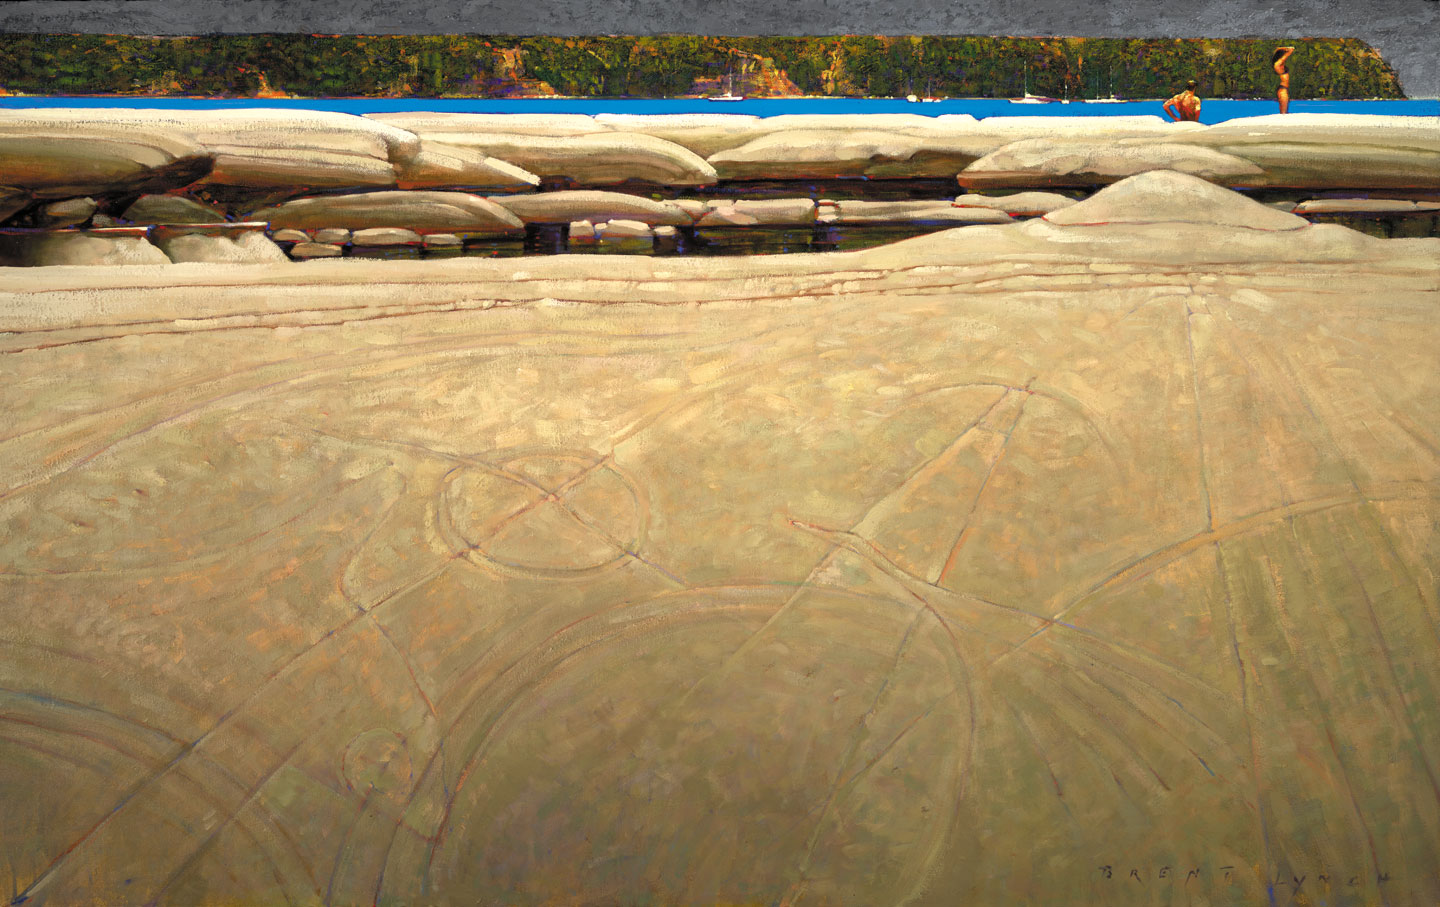 Hornby Island BC, 36 X 48 in. oil on canvas